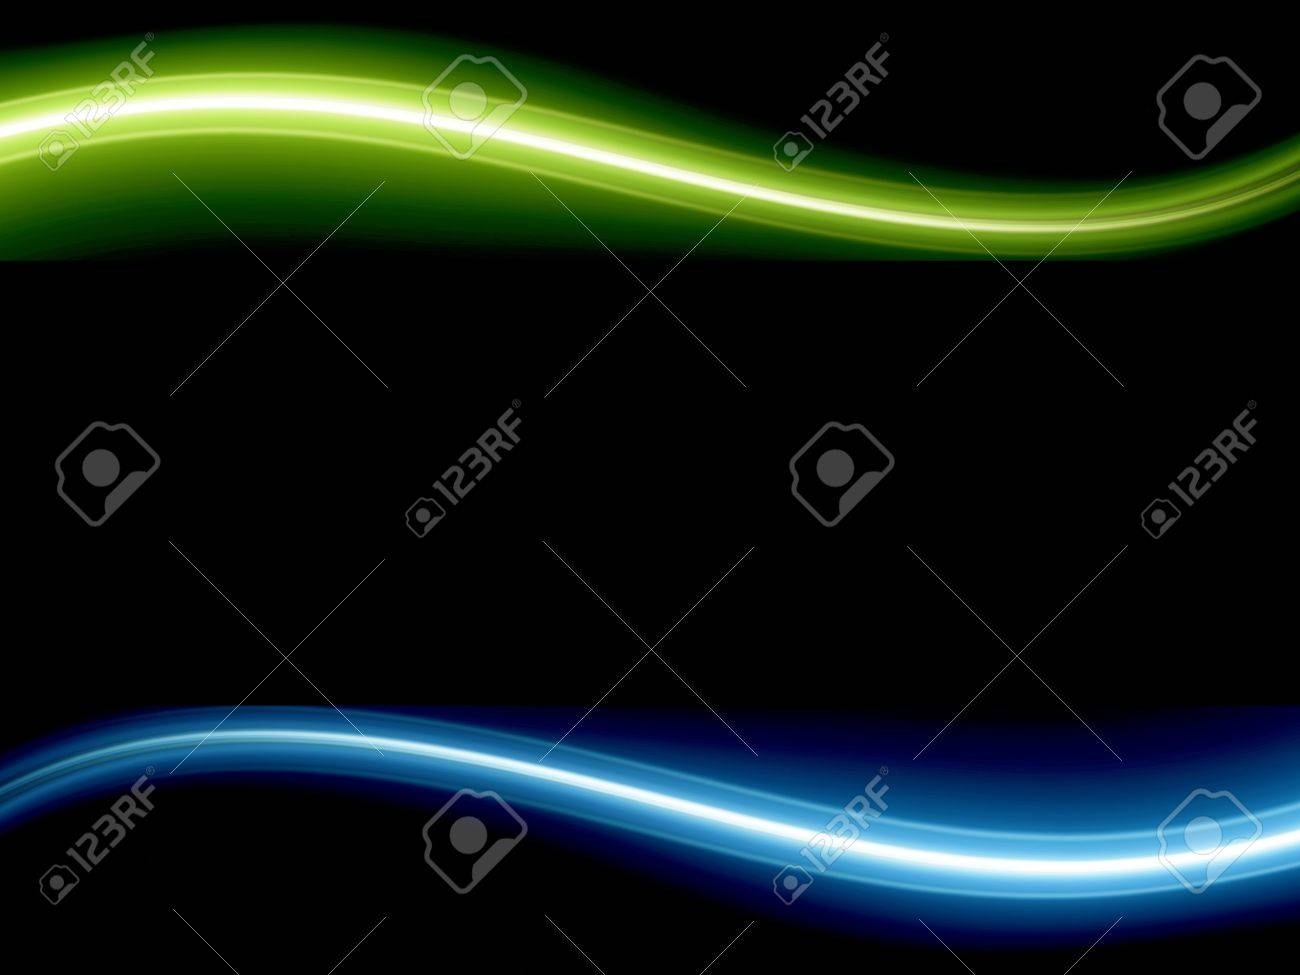 Blue and green dynamic wave over black background. Illustration Stock Illustration - 9693527